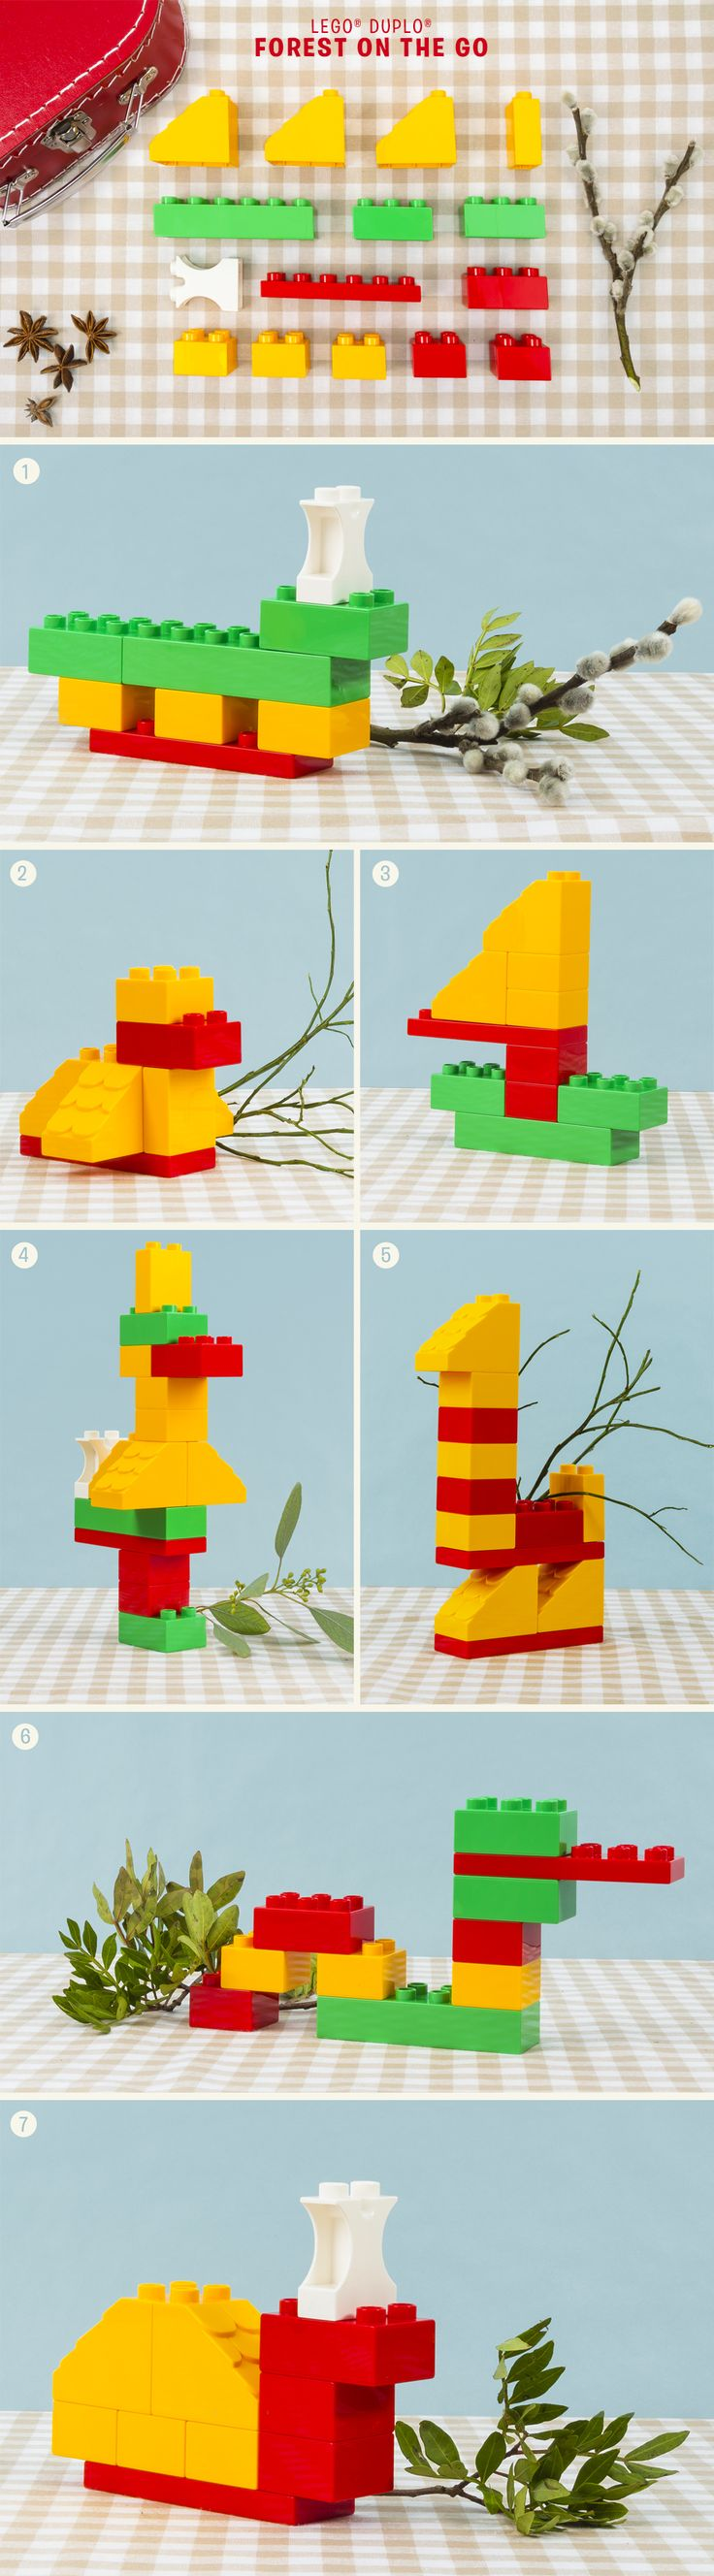 Whether you're on a long car journey or just popping to the shops, keeping your little one entertained can be as simple as packing a few bricks! You can find some 'on the go' ideas using our new LEGO DUPLO Forest sets here: http://www.lego.com/da-dk/family/articles/forest-animals-on-the-go-65319b007f144207a3dcf0adb6c811b9